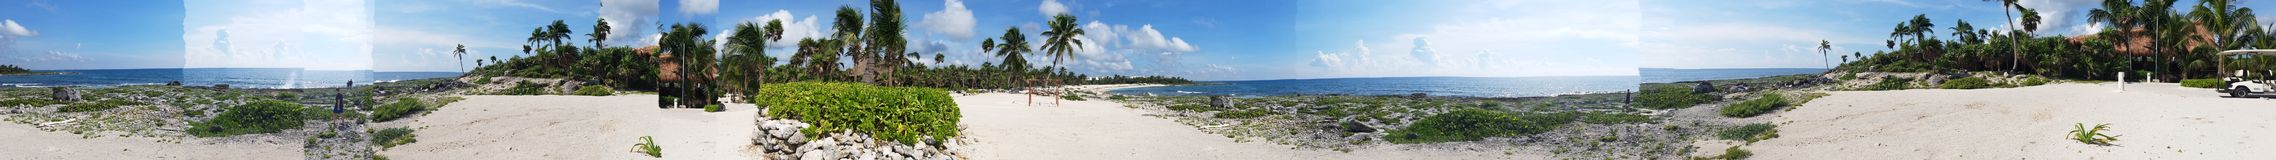 Cancun panorama royalty free stock images